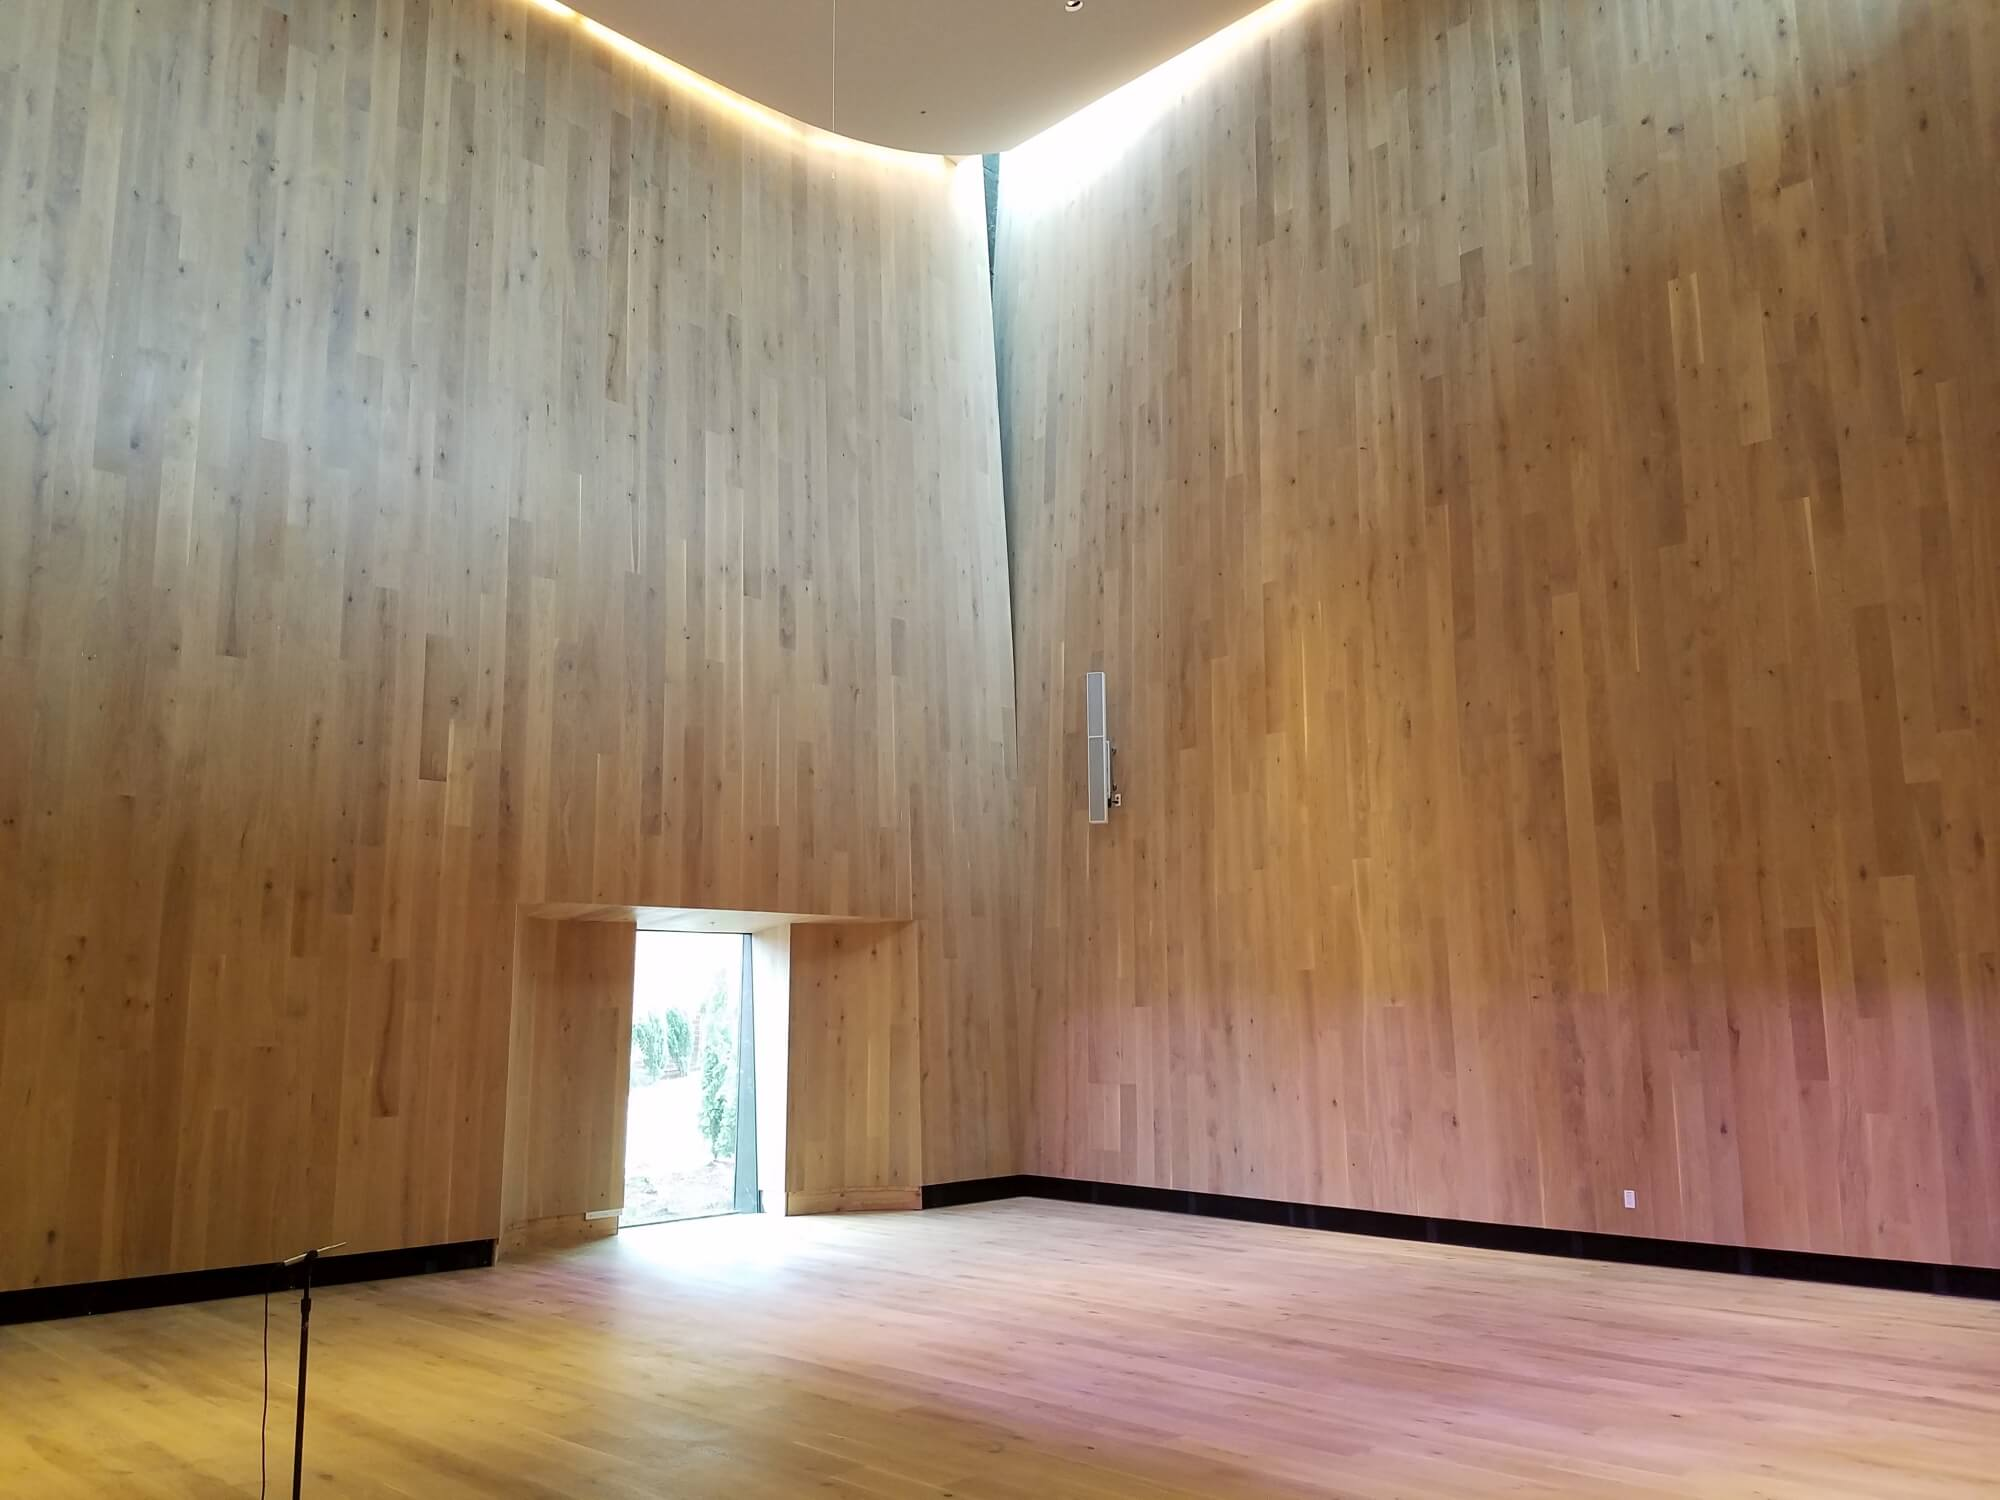 Large concert hall with wood walls shaped like an instrument to direct sound upwards.